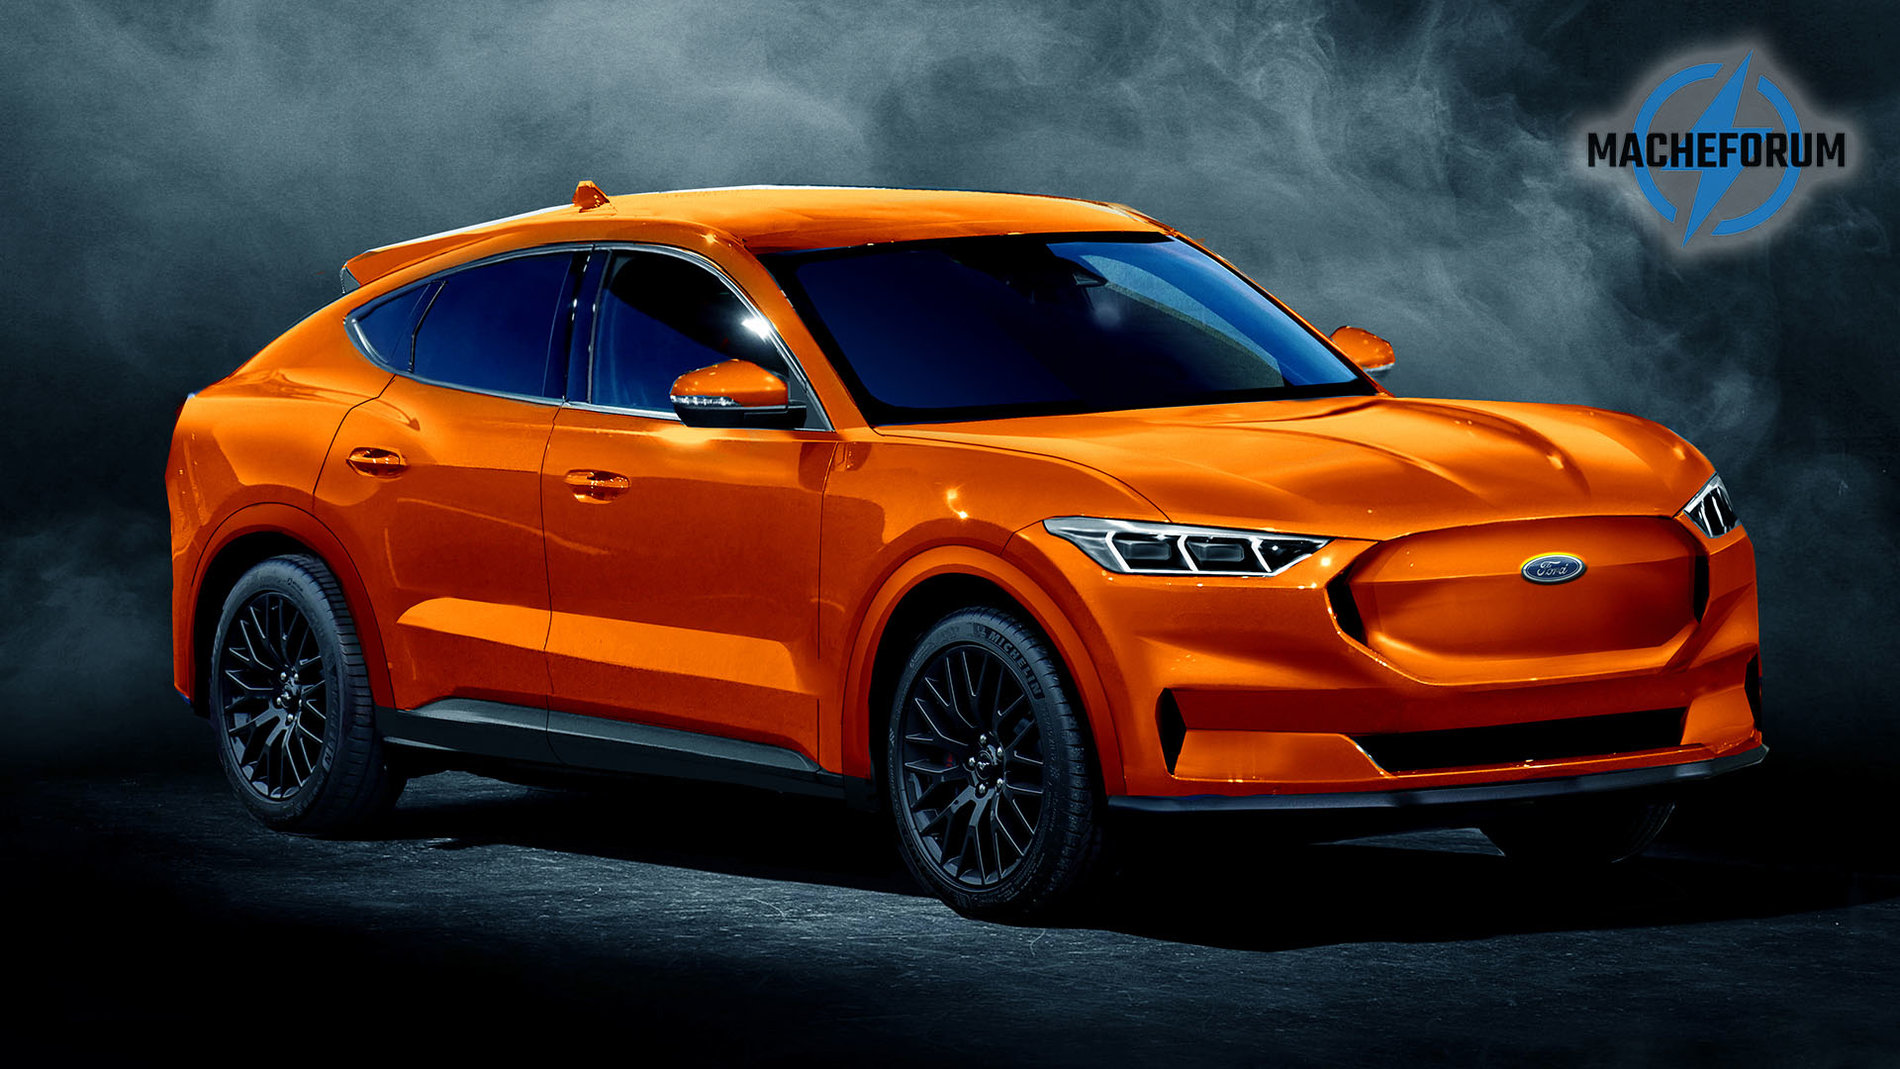 Ford-Mustang-Mach-E_orange.jpg